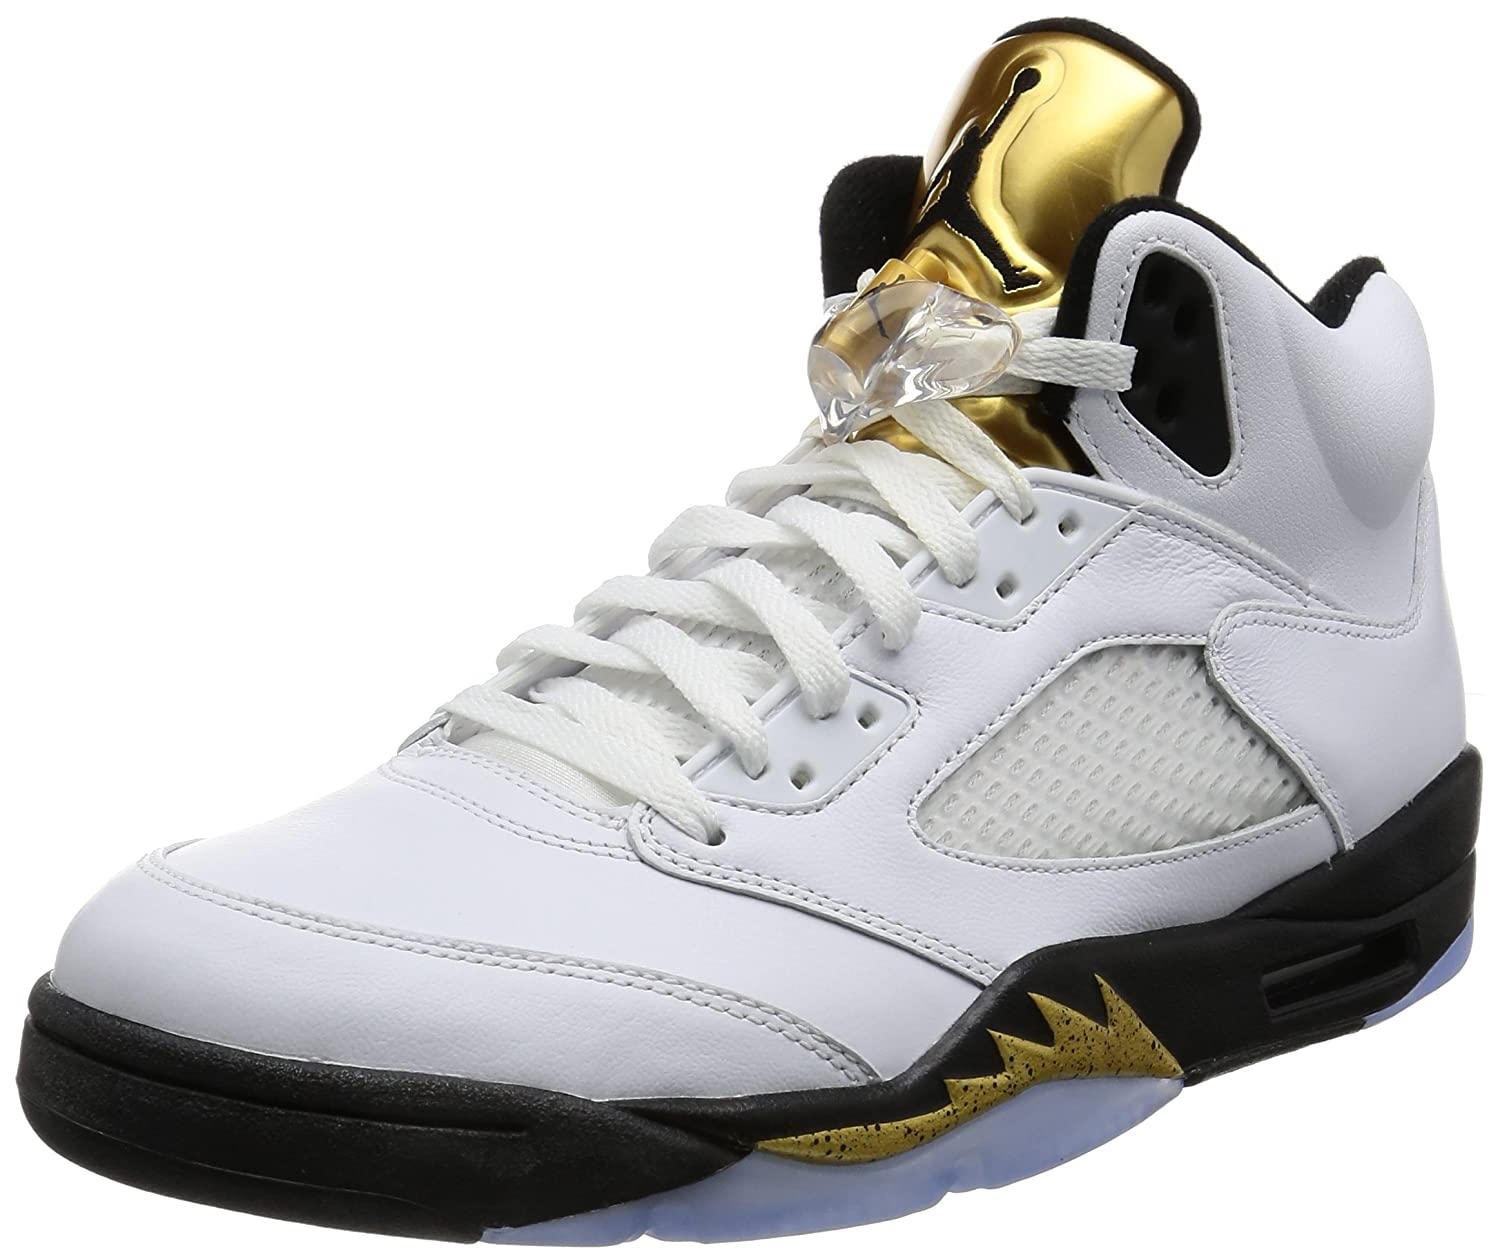 dc8c917a903c NIKE Mens Air Jordan 5 Retro Olympic White/Black-Metallic Gold Leather Size  14